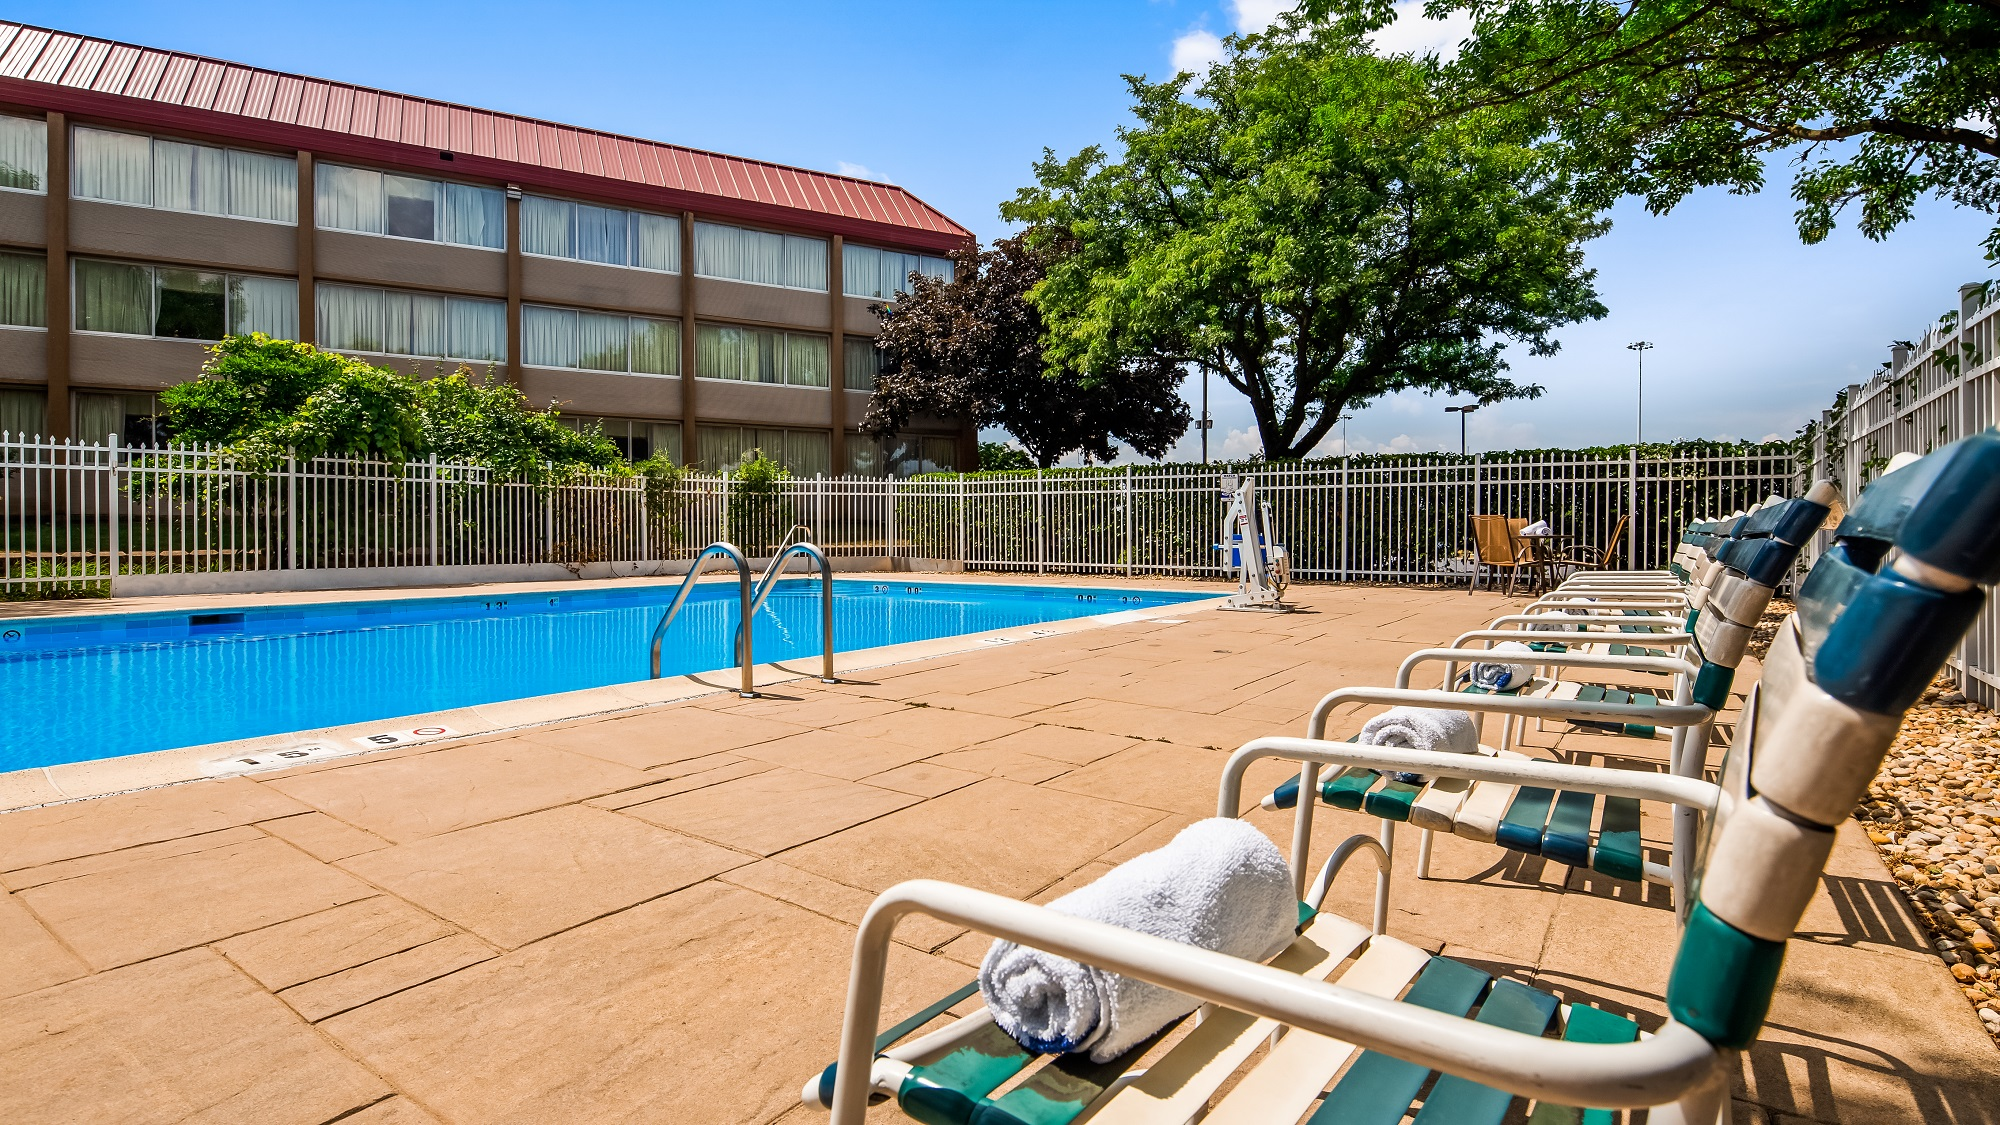 Hillside Il Hotels In Chicago With Pools O Hare Airport Hotel Best